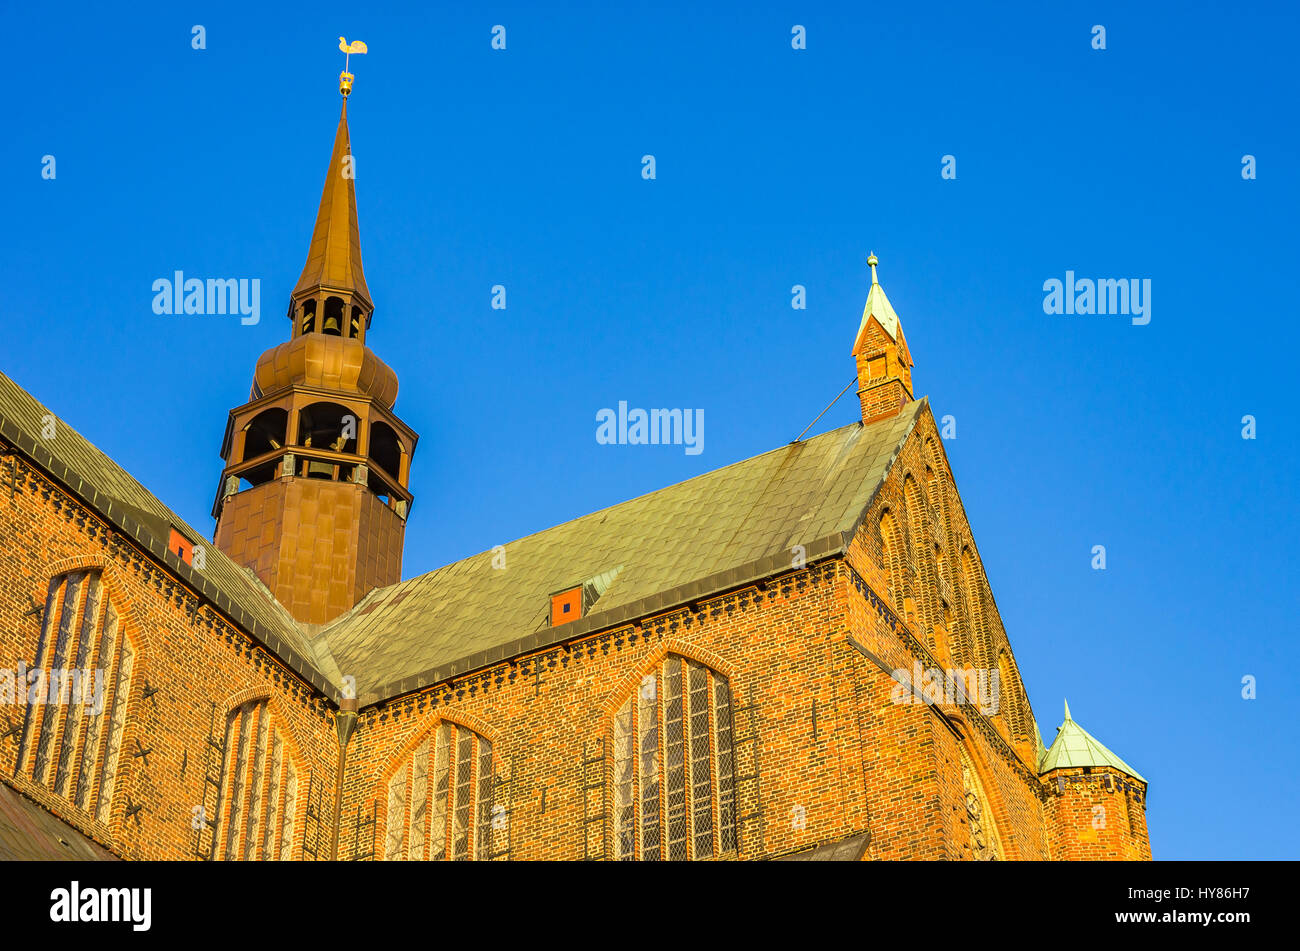 View of St. Mary's Church in the Hanseatic City of Stralsund, Mecklenburg-Pomerania, Germany. Stock Photo